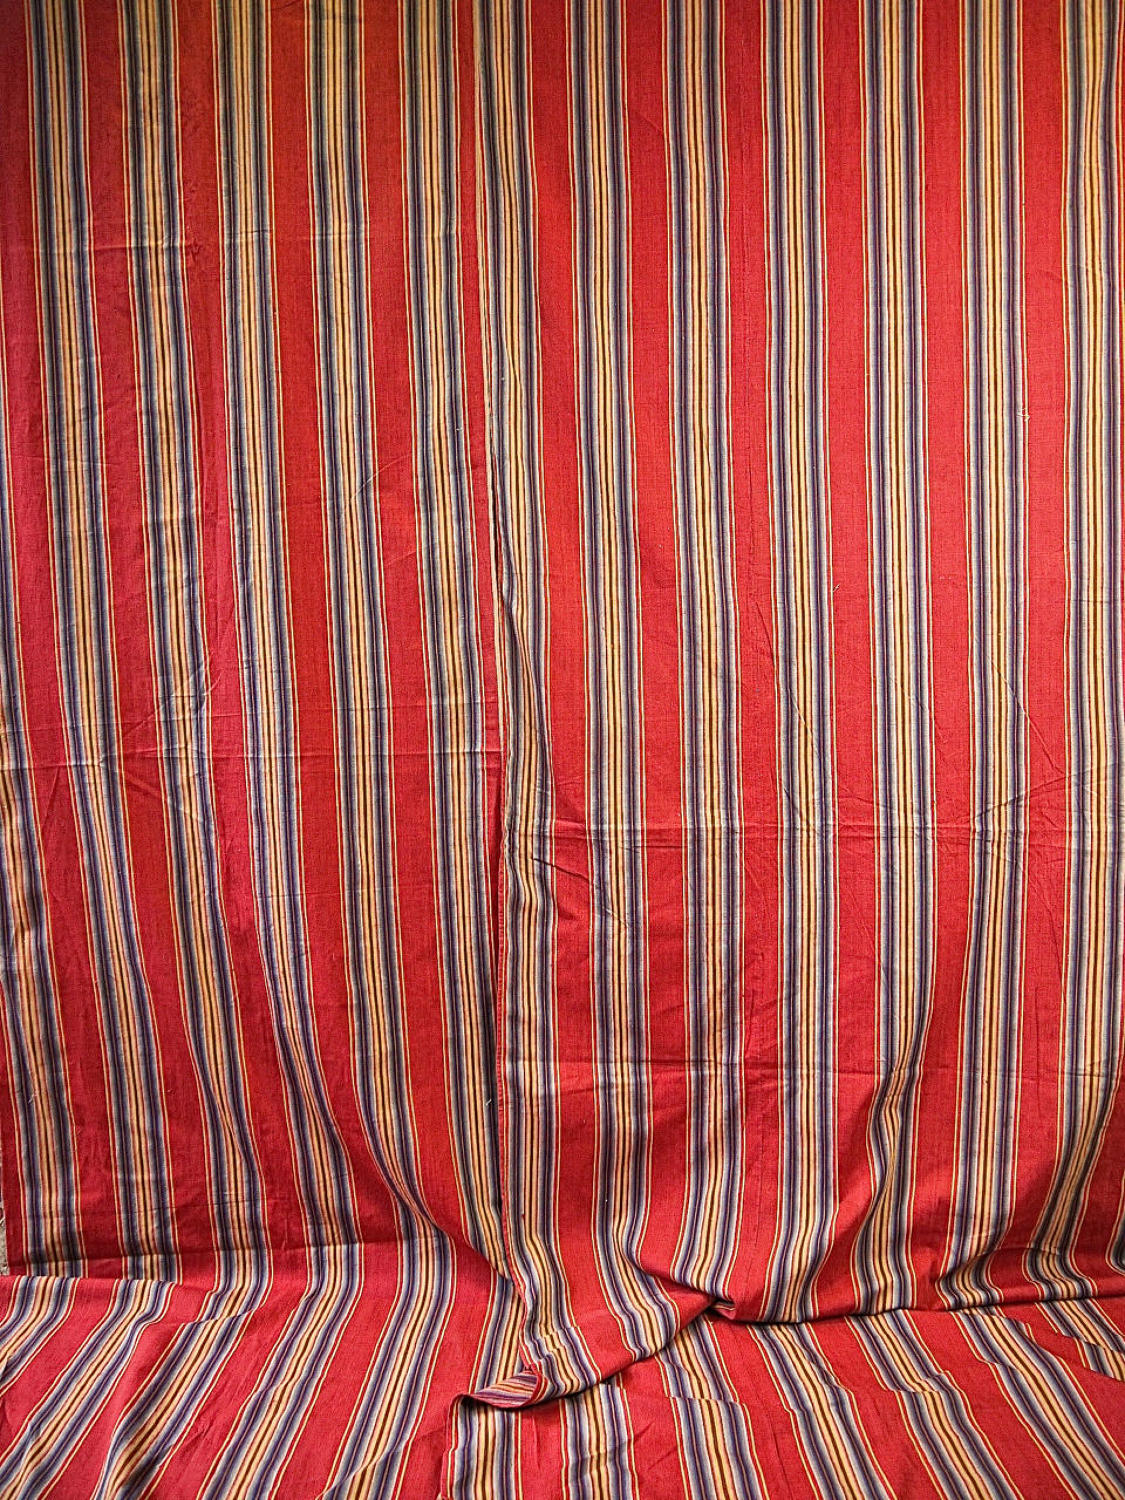 Red Blue Striped Cotton Textile French 18th Century